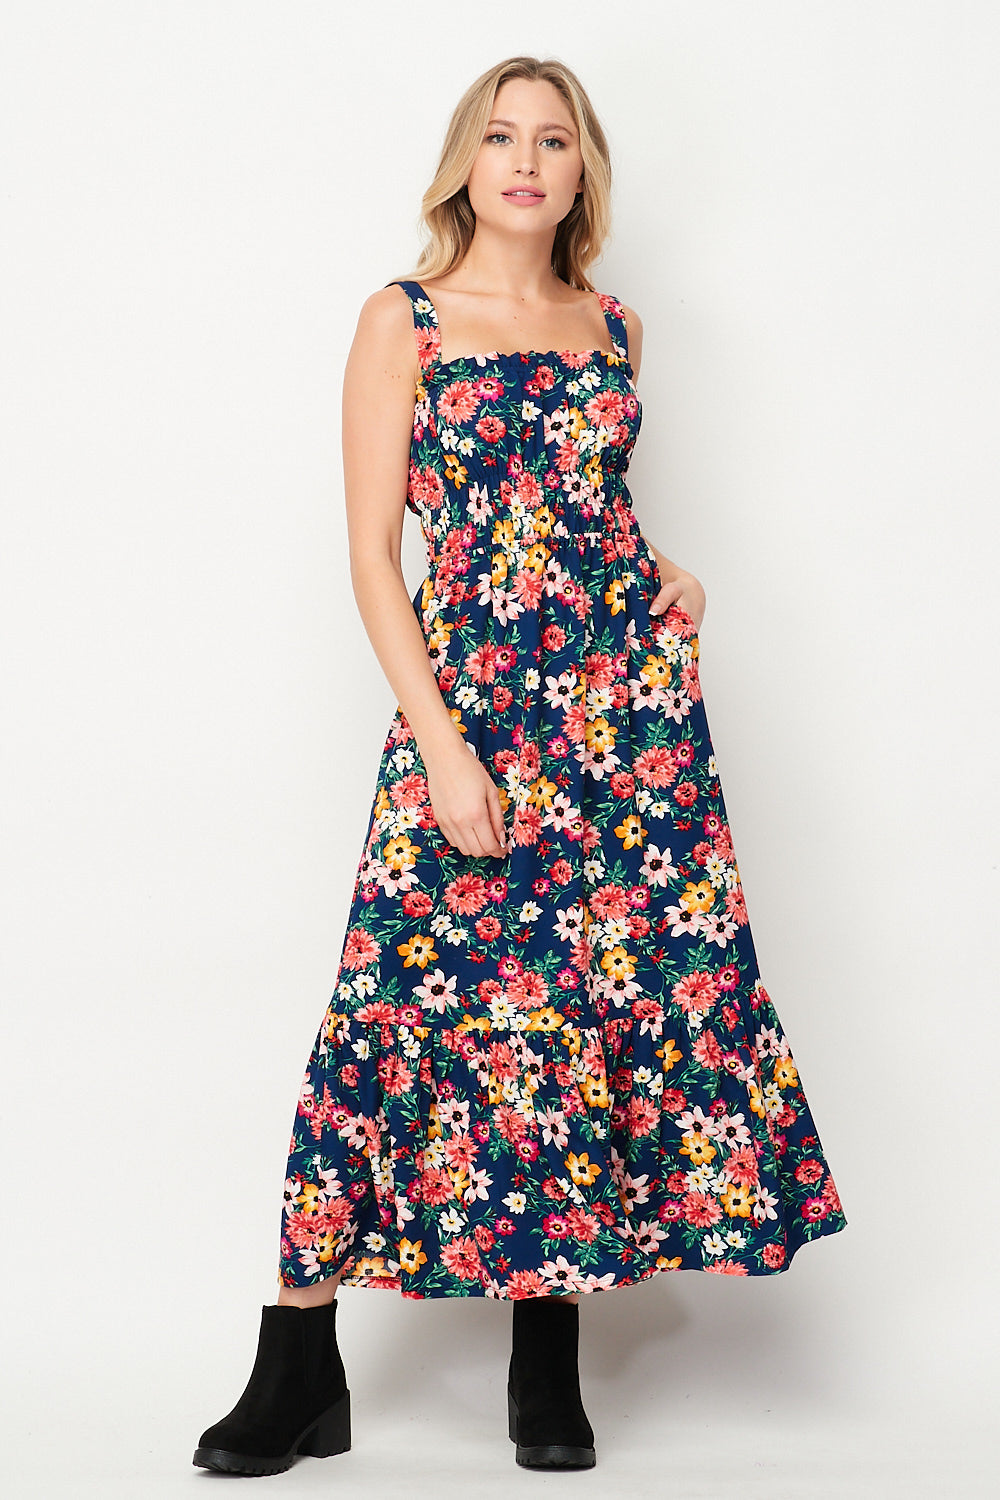 Spring Awakening Maxi Dress w/ Pocket | Blue Floral - Velvet Torch